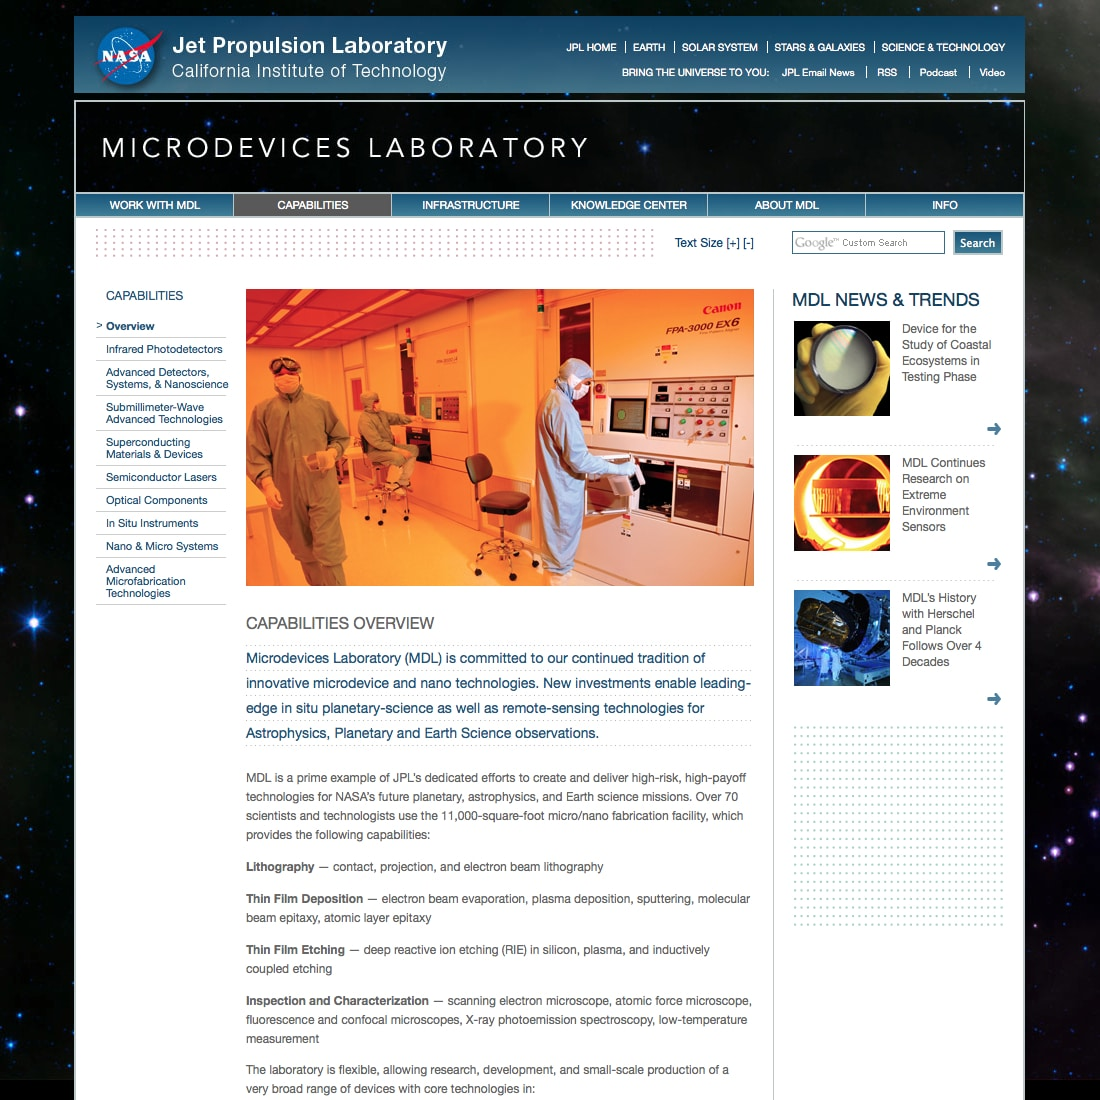 Capabilites | Microdevices Laboratory | NASA Jet Propulsion Laboratory California Institute of Technology